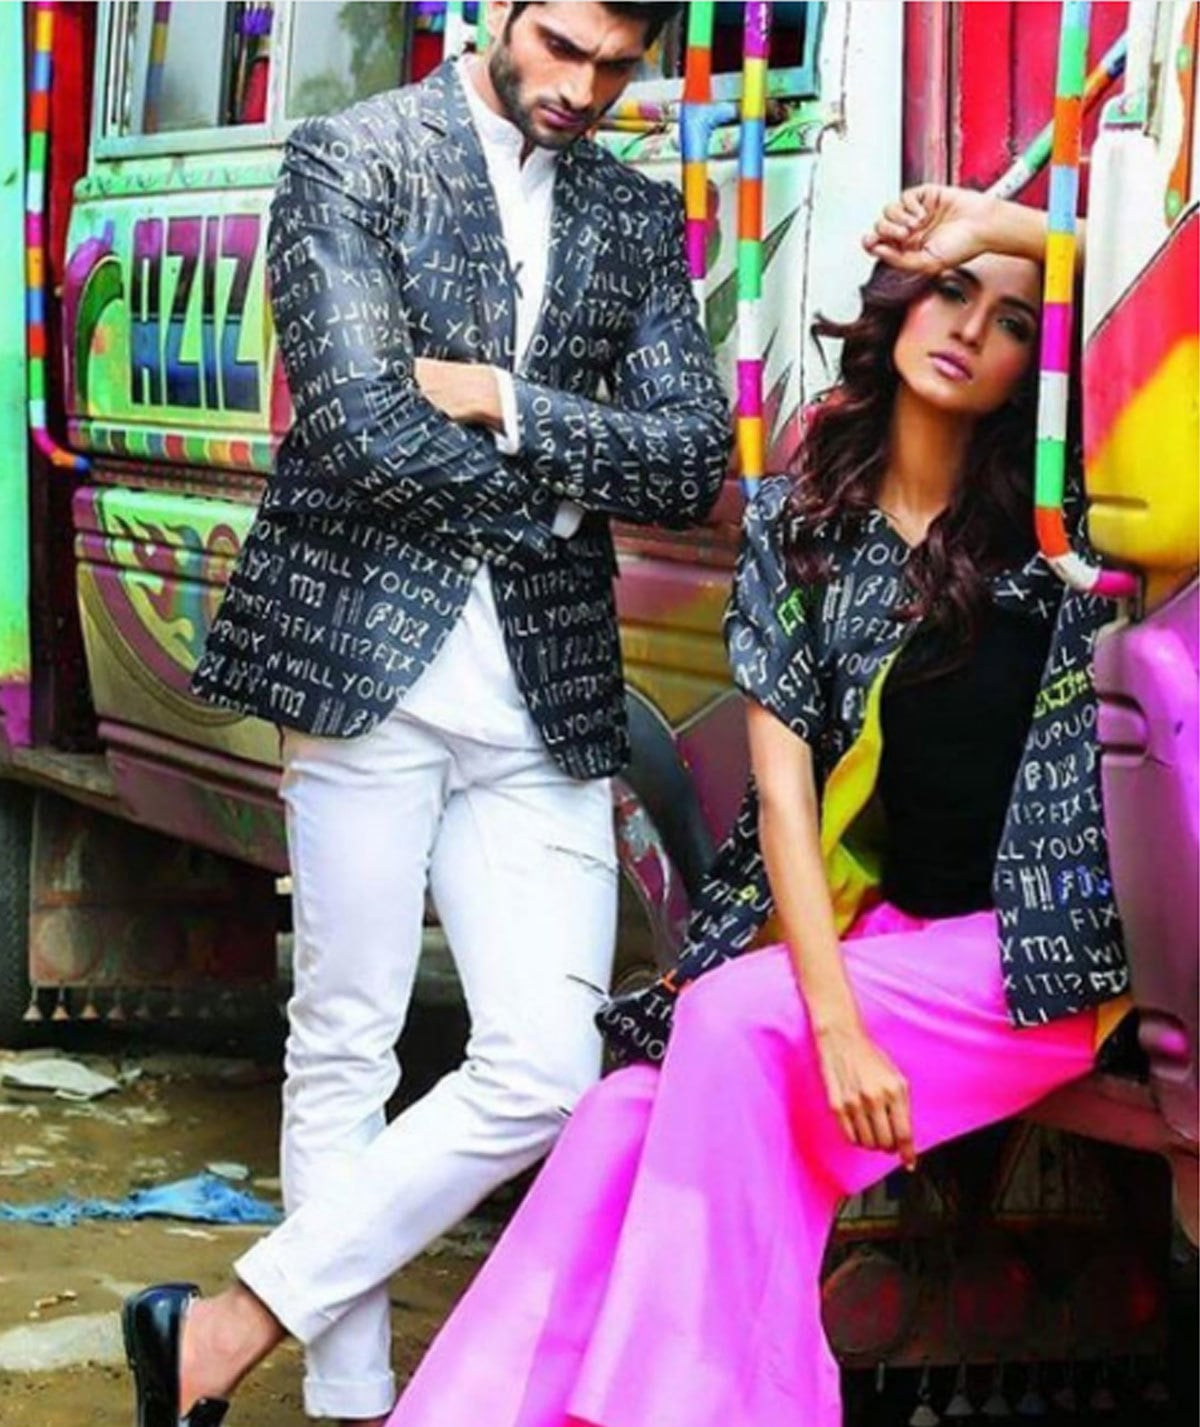 We are in love with this shoot, it's a strange amalgamation of some English funky styled outfits, and a total contrast background with a uniquely designed truck art at a real truck. #asifrehaman #javeriahanif #deepakperwani #fixit - Instagram